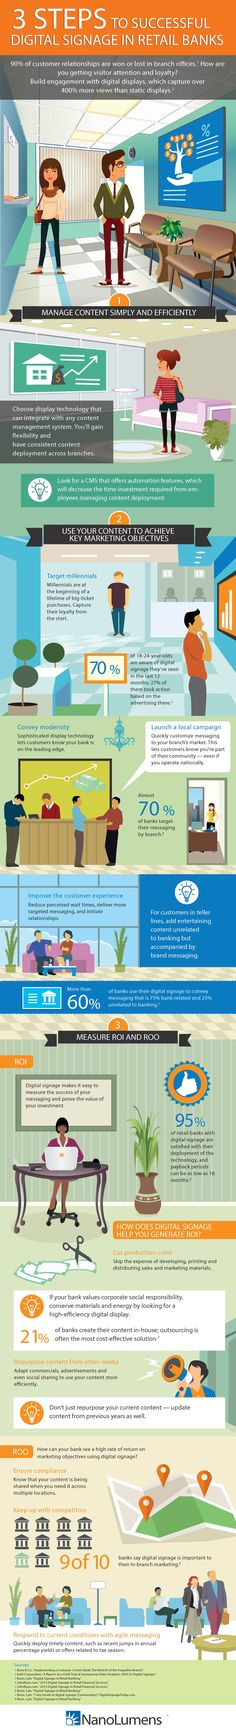 INFOGRAPHICS Retail Banking Branches: Digital Signage & Future Mix | VisibleBanking.com - Part 2